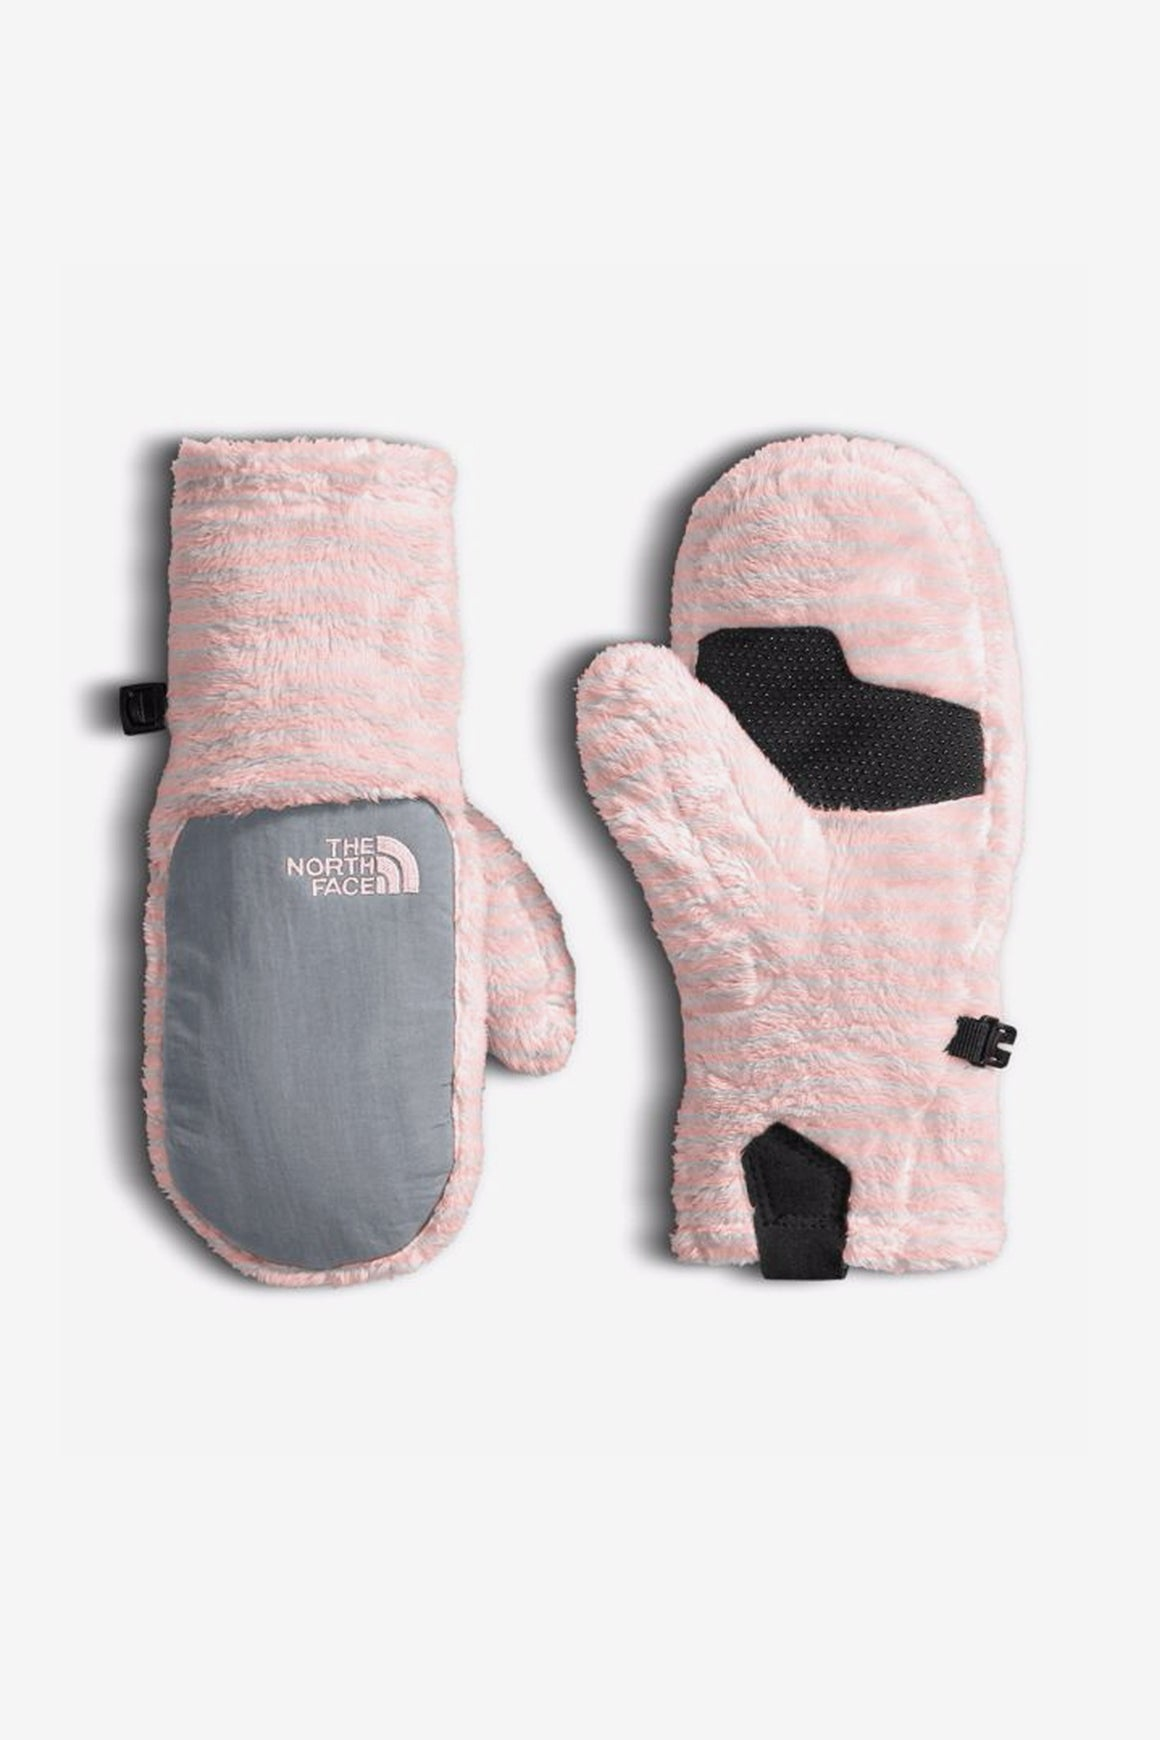 The North Face Denali Thermal Mitt - Pink